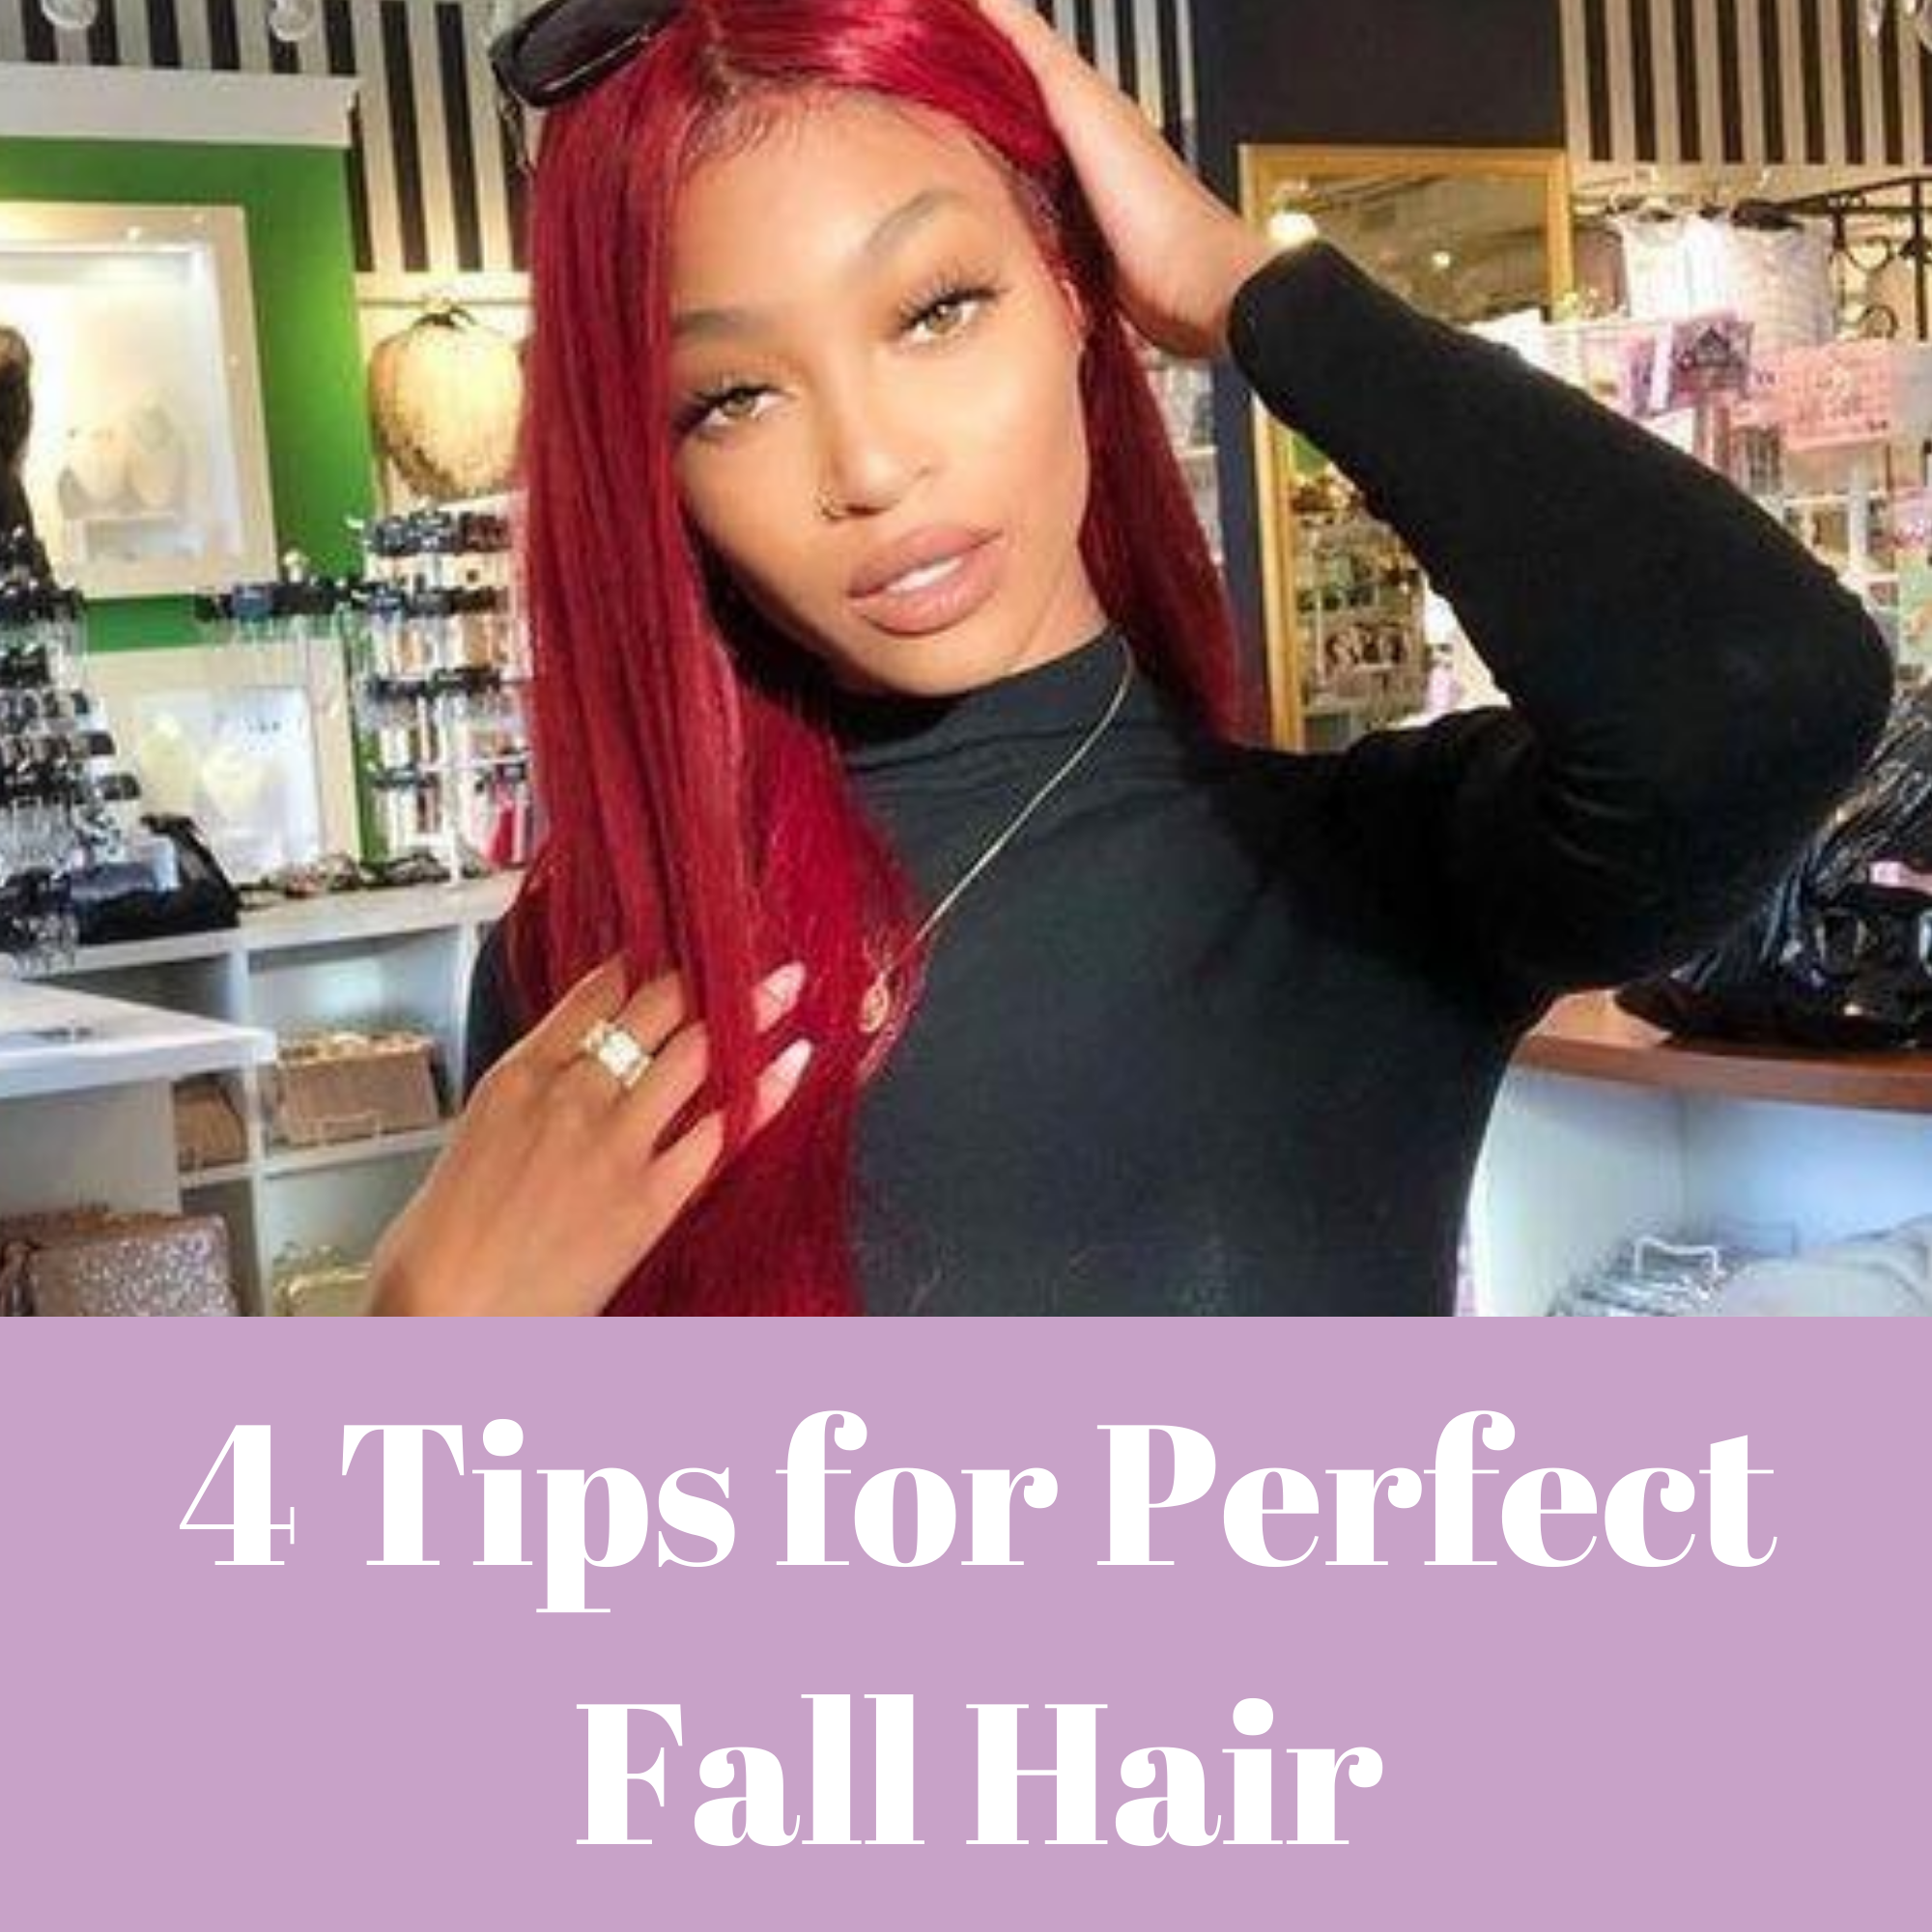 4 TIPS FOR PERFECT FALL HAIR